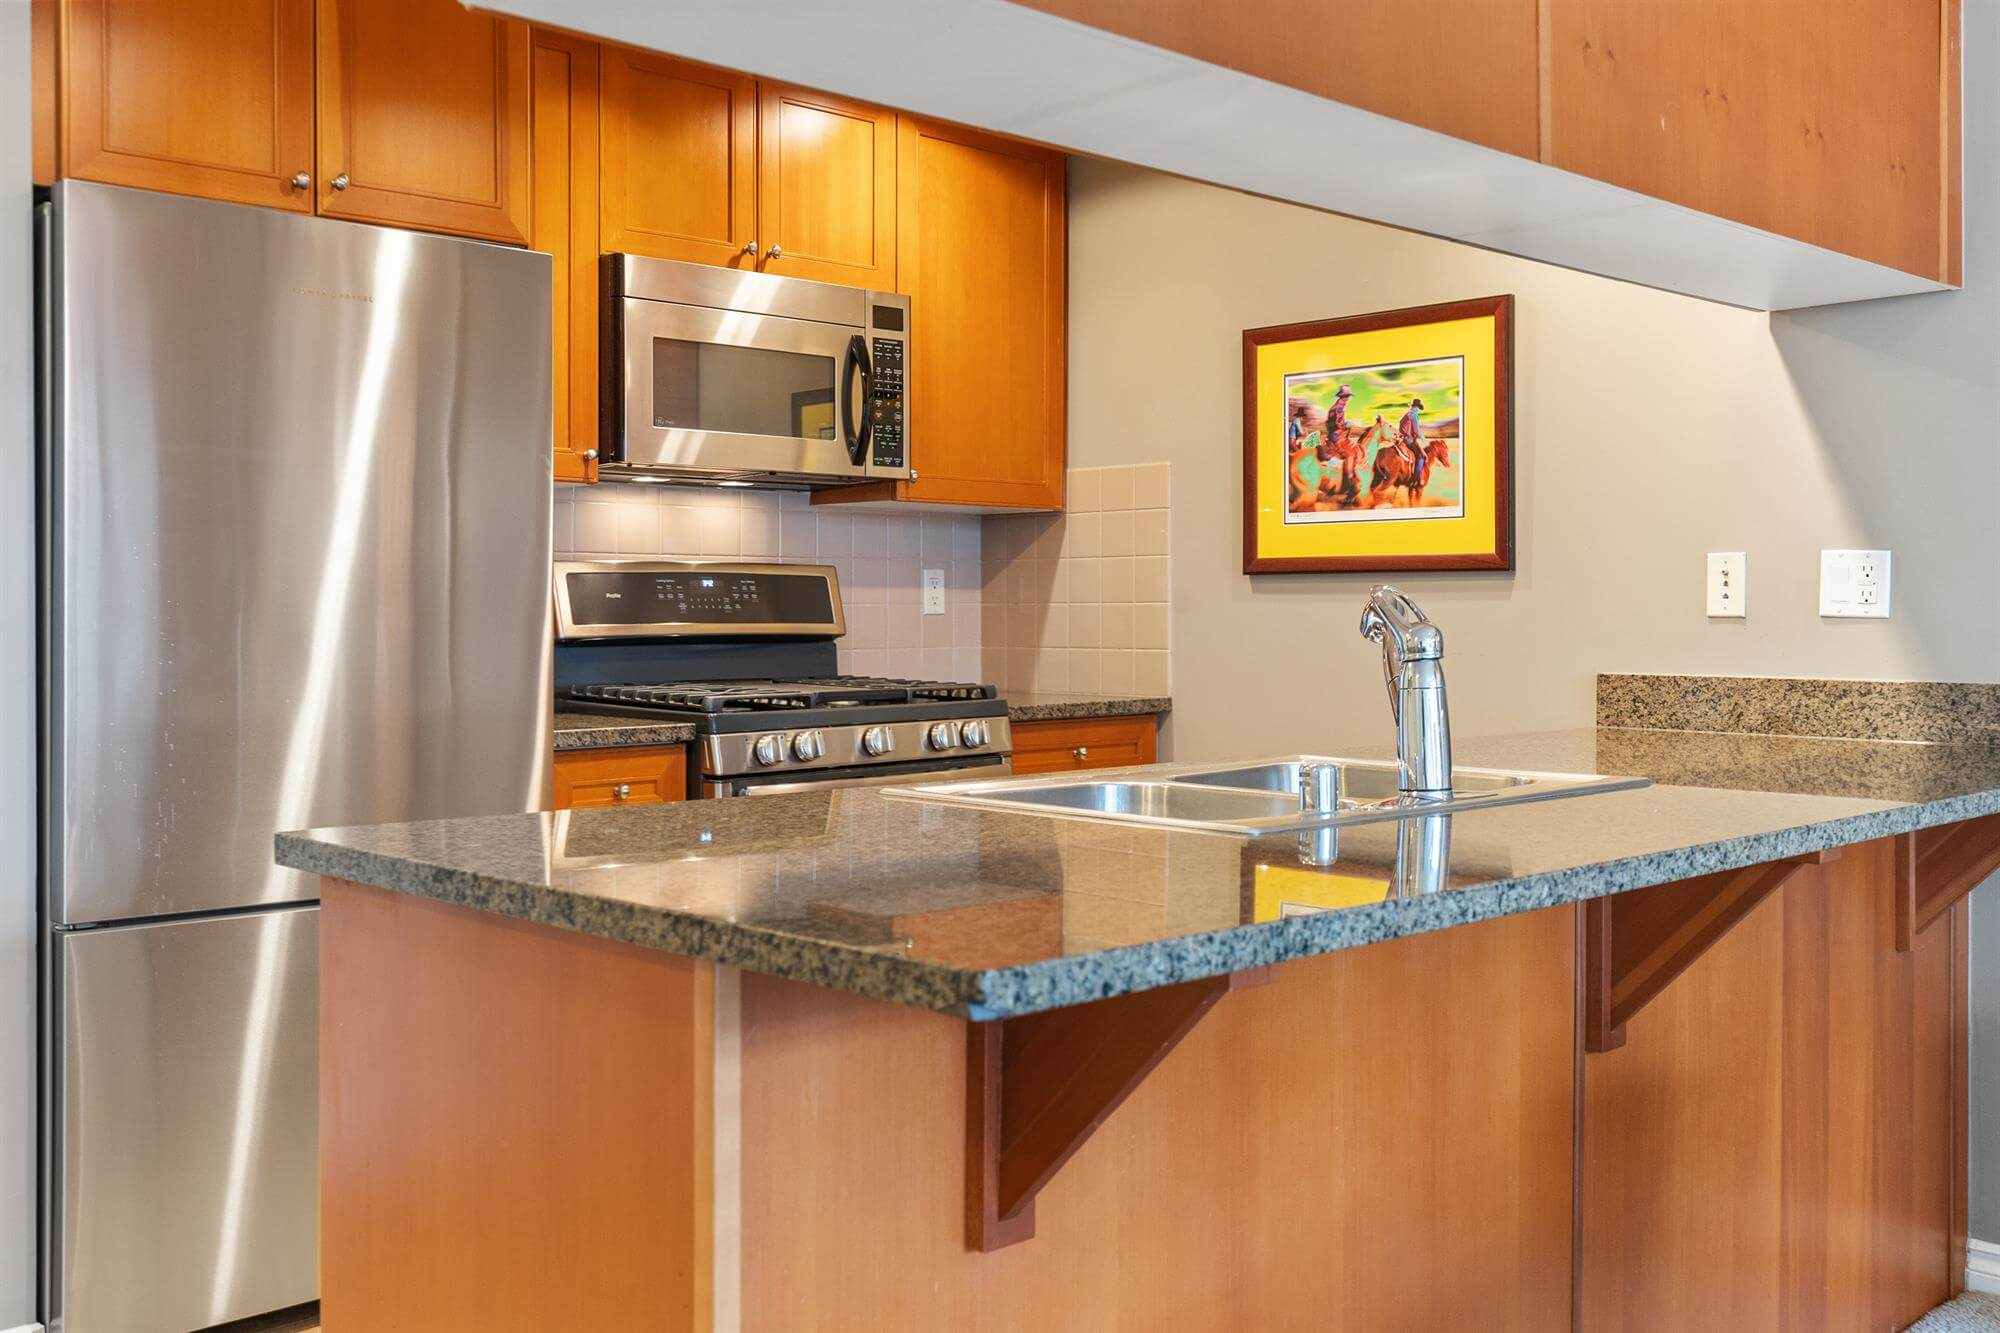 Galley kitchen with breakfast bar